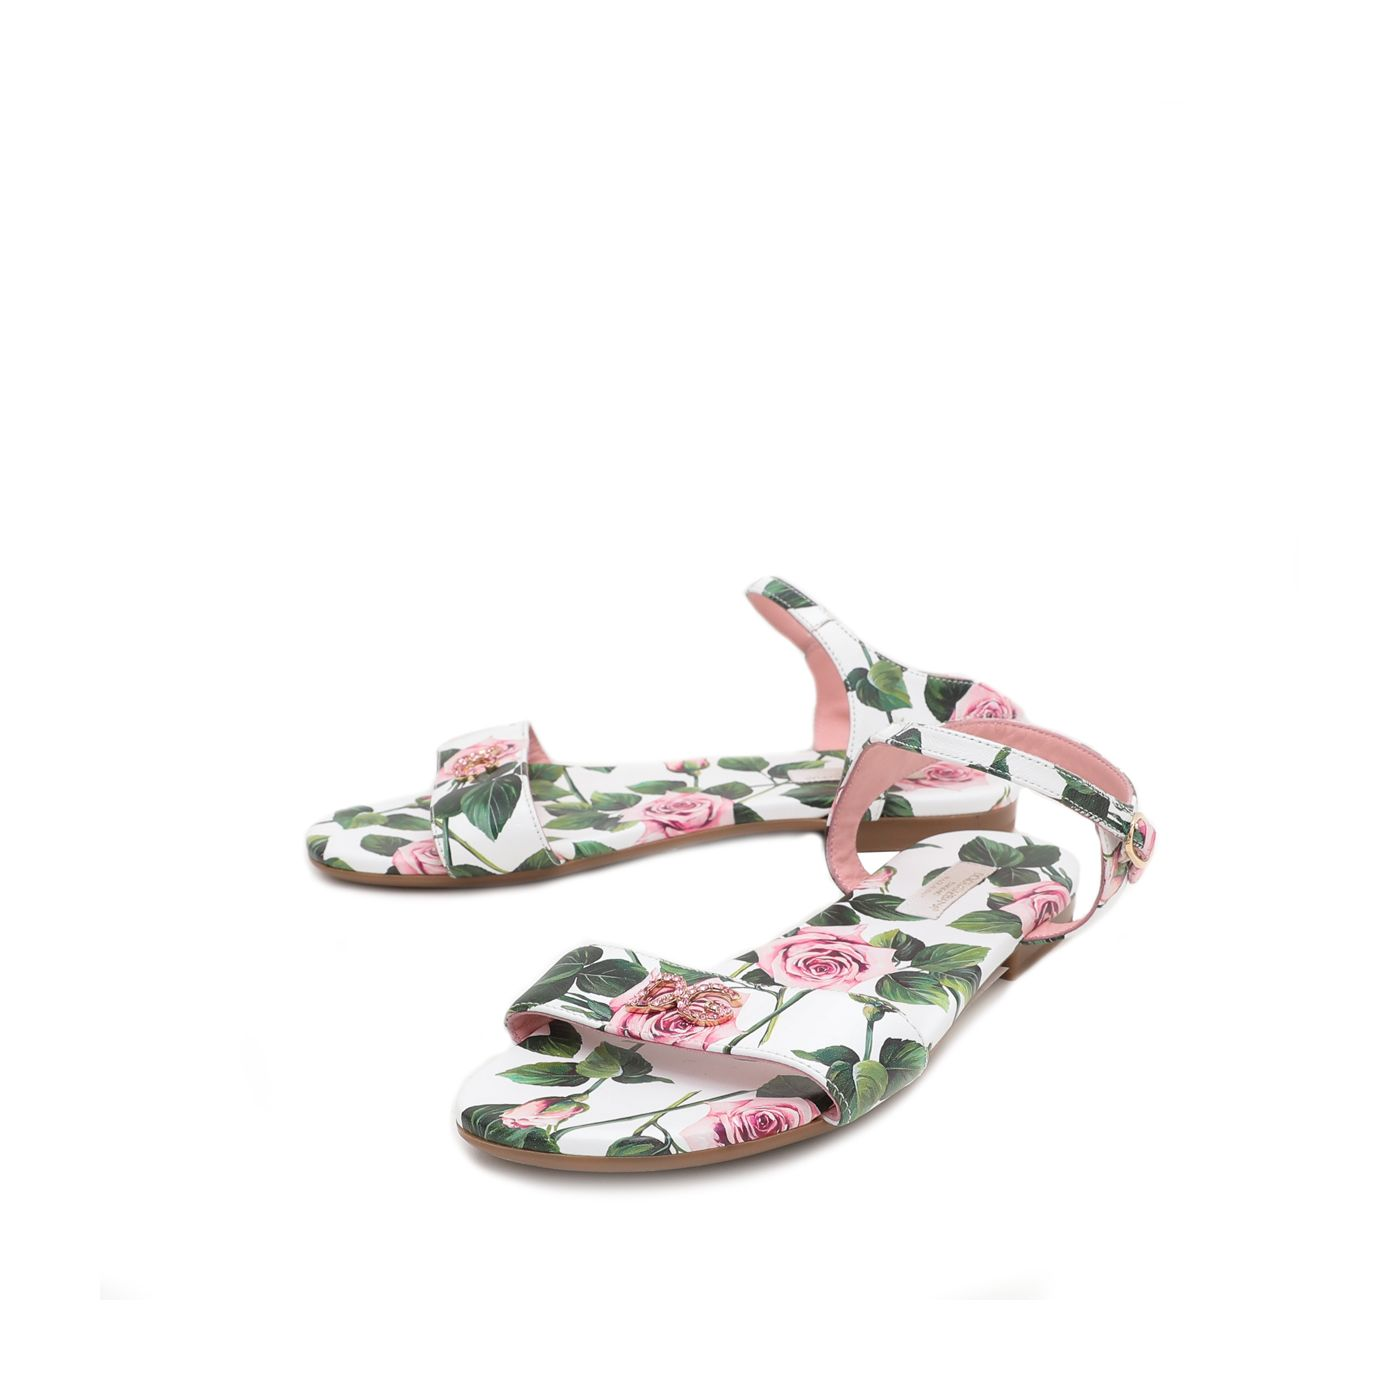 Dolce & Gabbana Tropical Rose Print Sandals 36